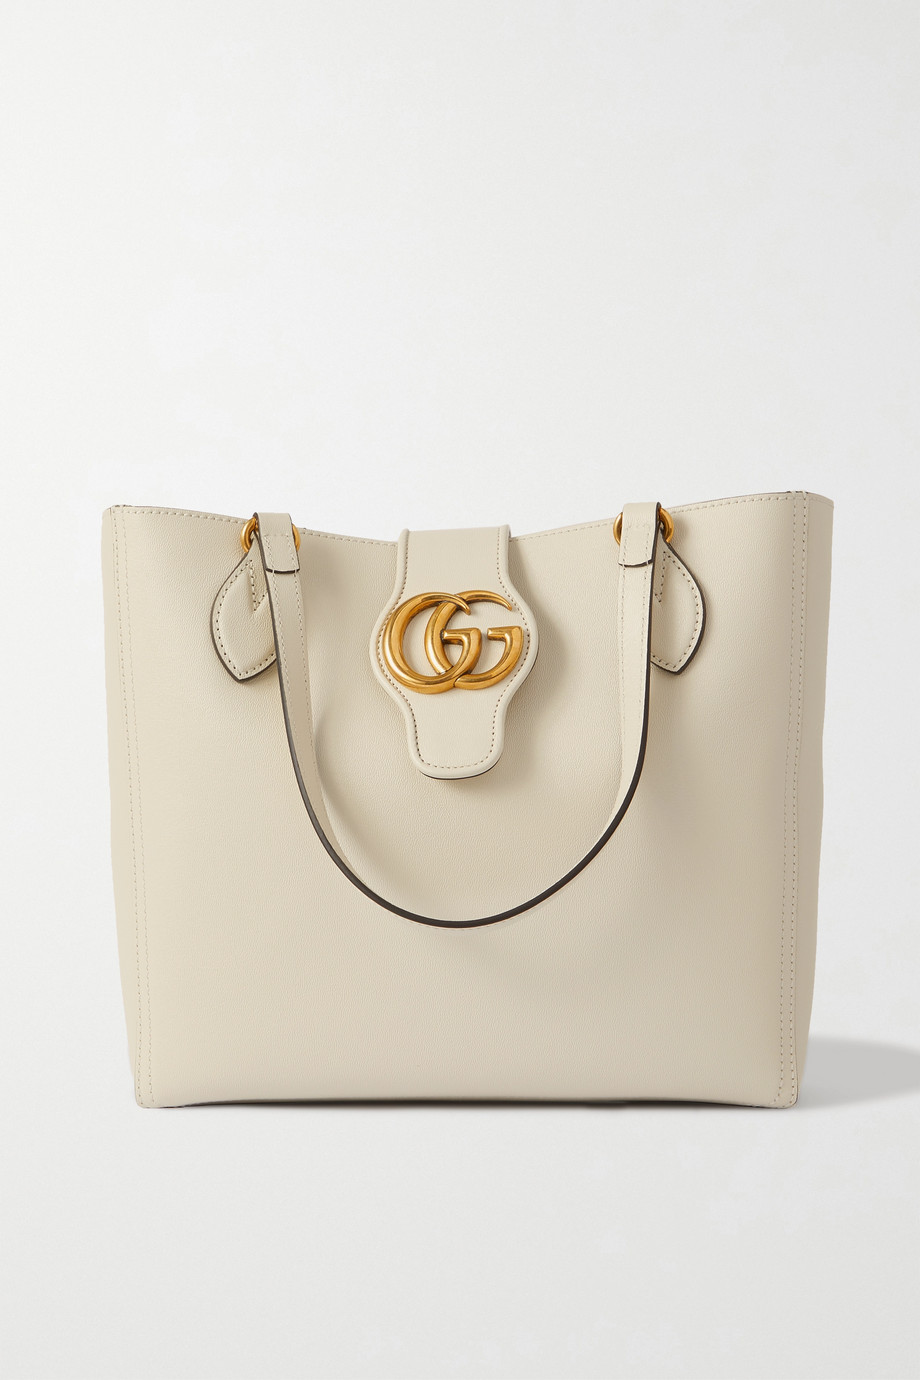 GUCCI + NET SUSTAIN Dahlia textured-leather tote